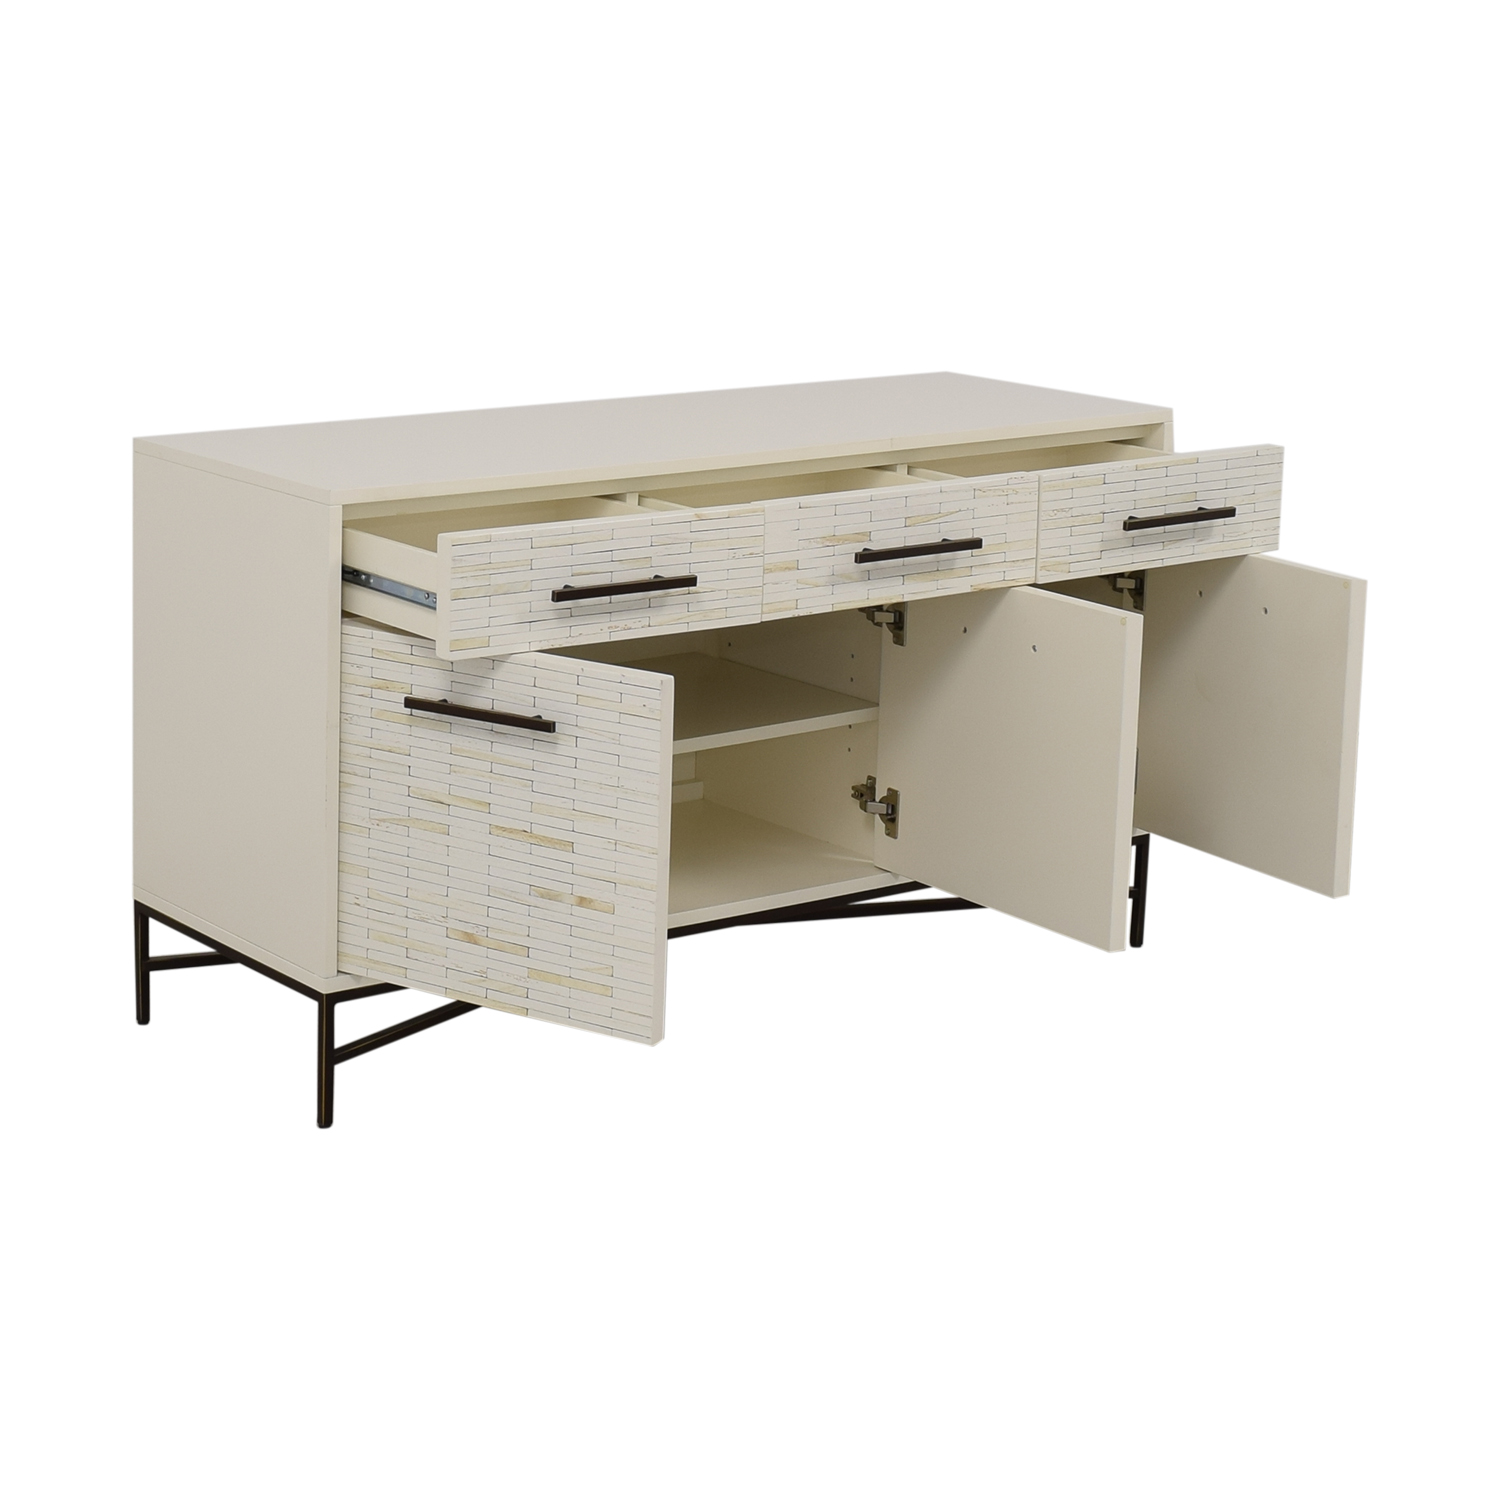 West Elm West Elm White Three-Drawer Wood Tiled Media Console second hand